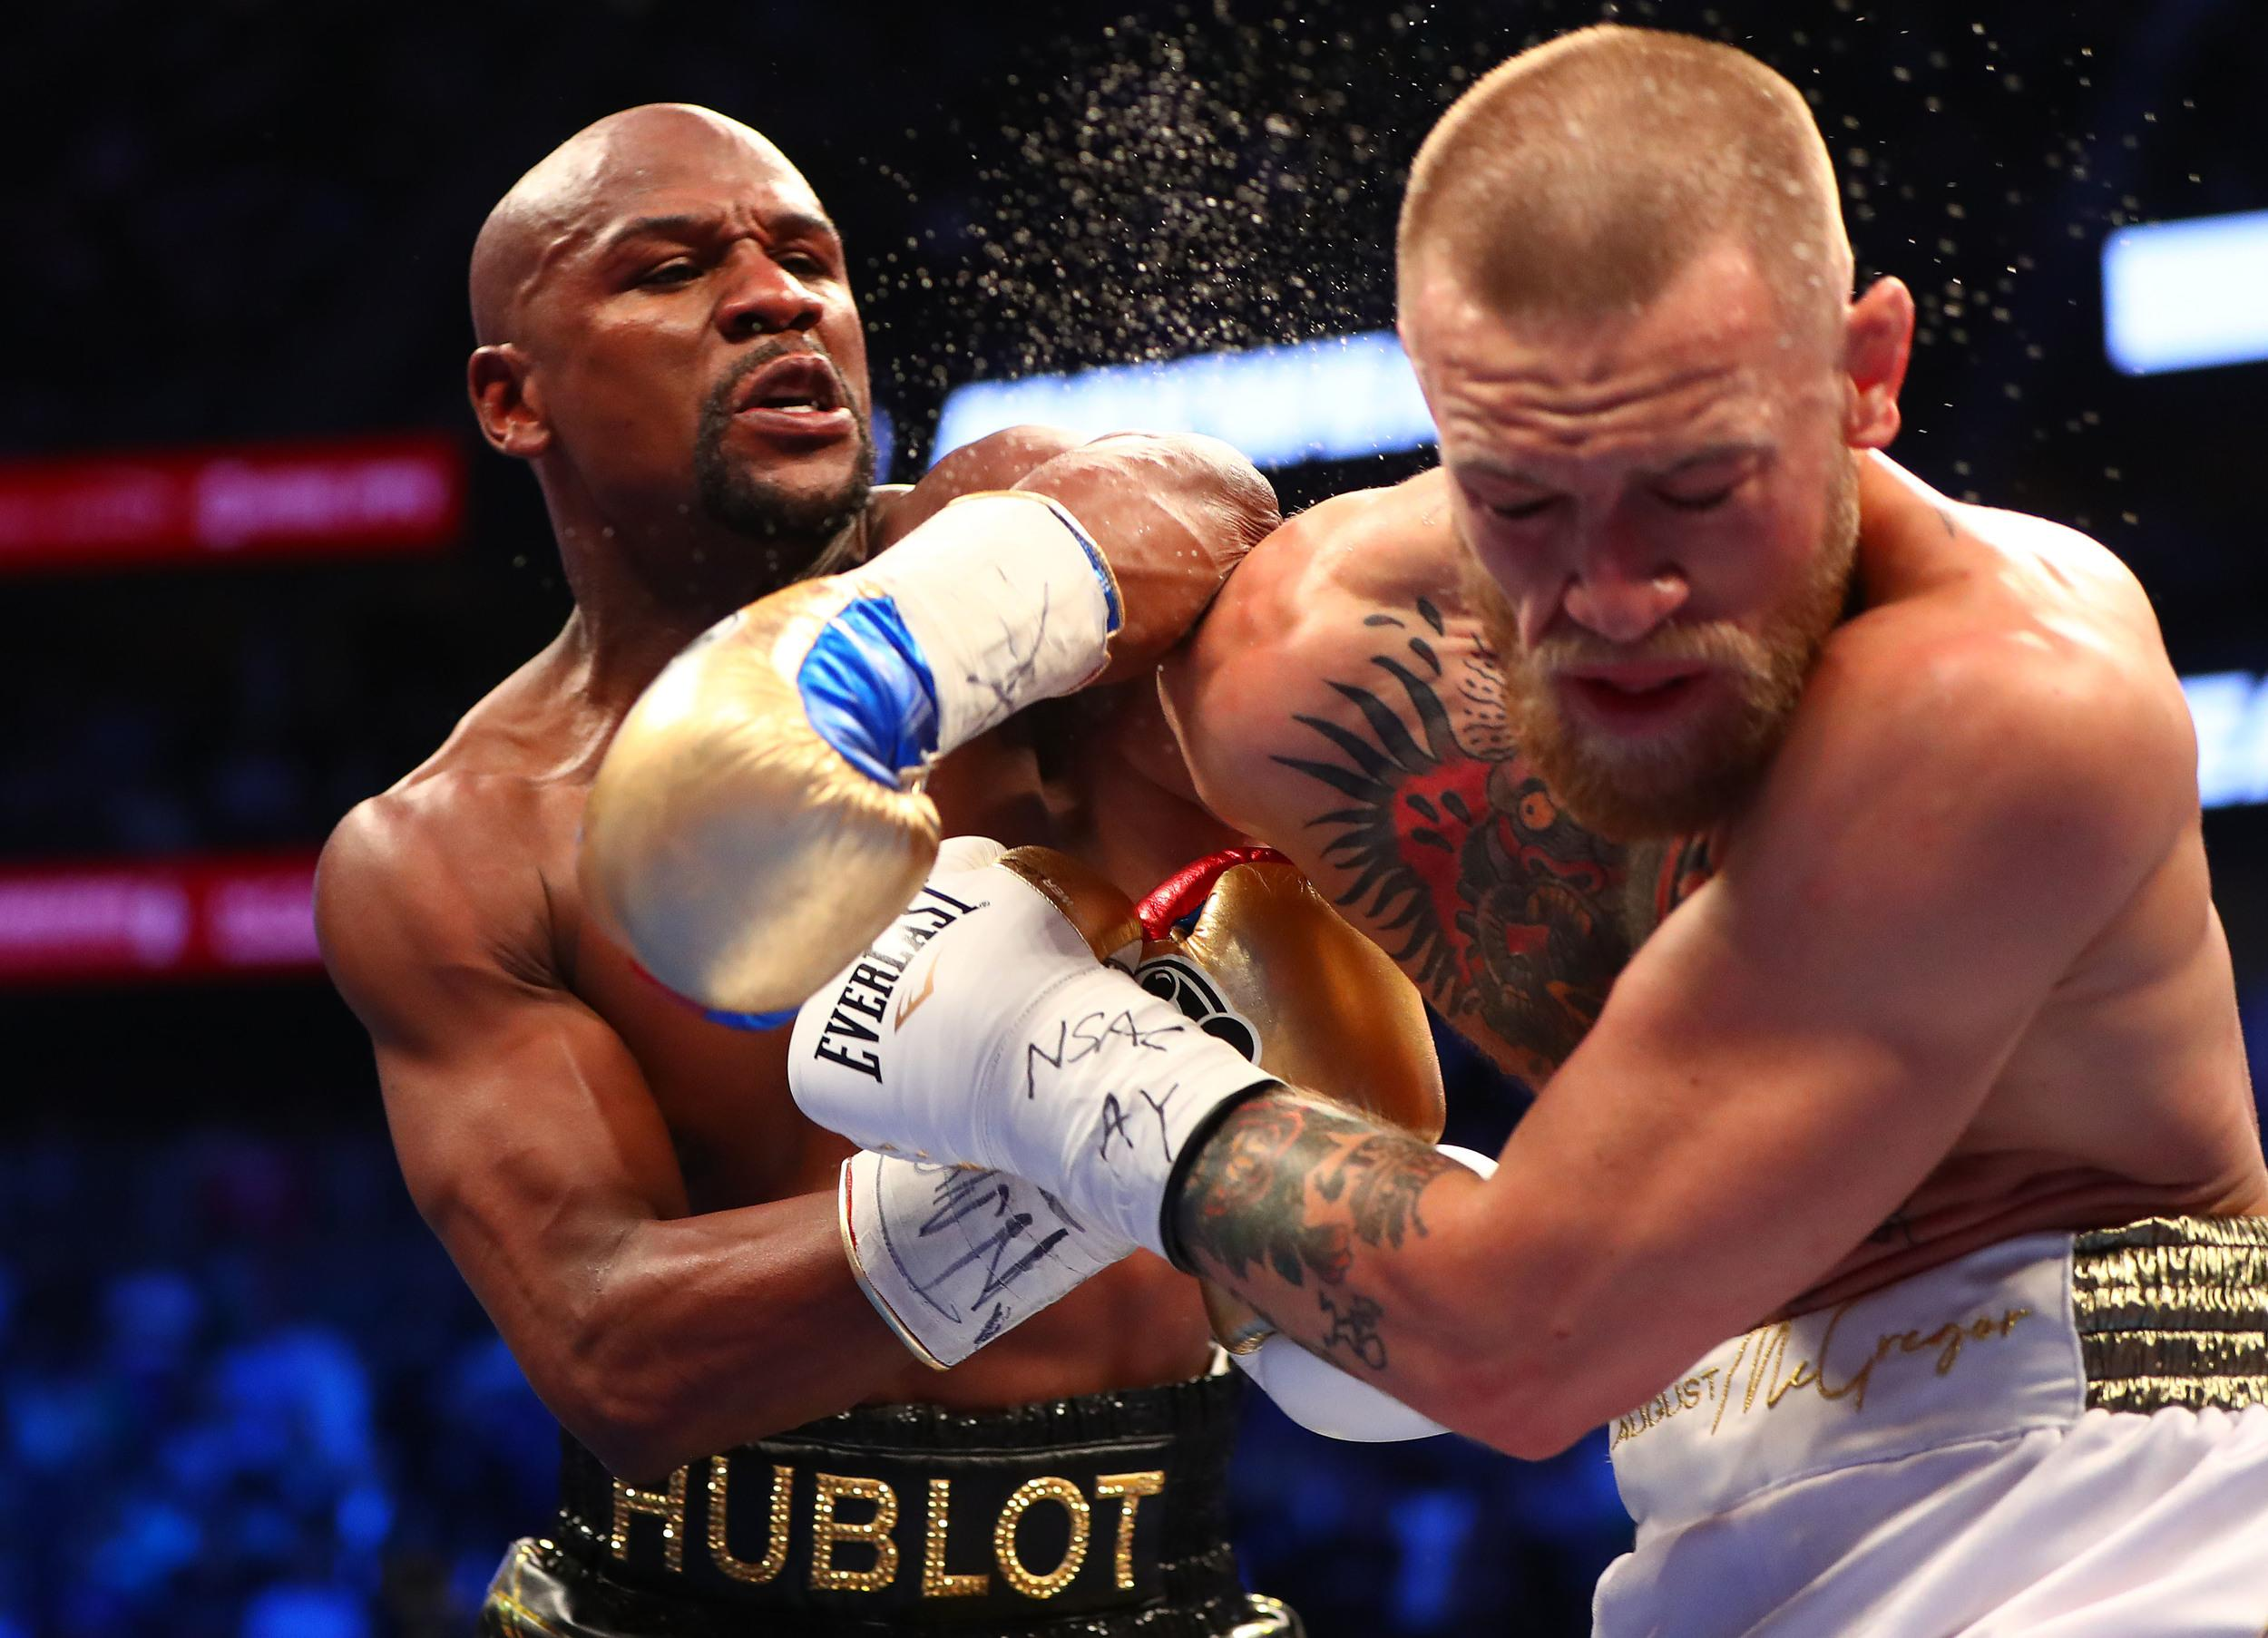 Aug 26, 2017; Las Vegas, NV, USA; Floyd Mayweather Jr. lands a hit against Conor McGregor during their boxing match at the at T-Mobile Arena. Mandatory Credit: Mark J. Rebilas-USA TODAY Sports/Sipa USA